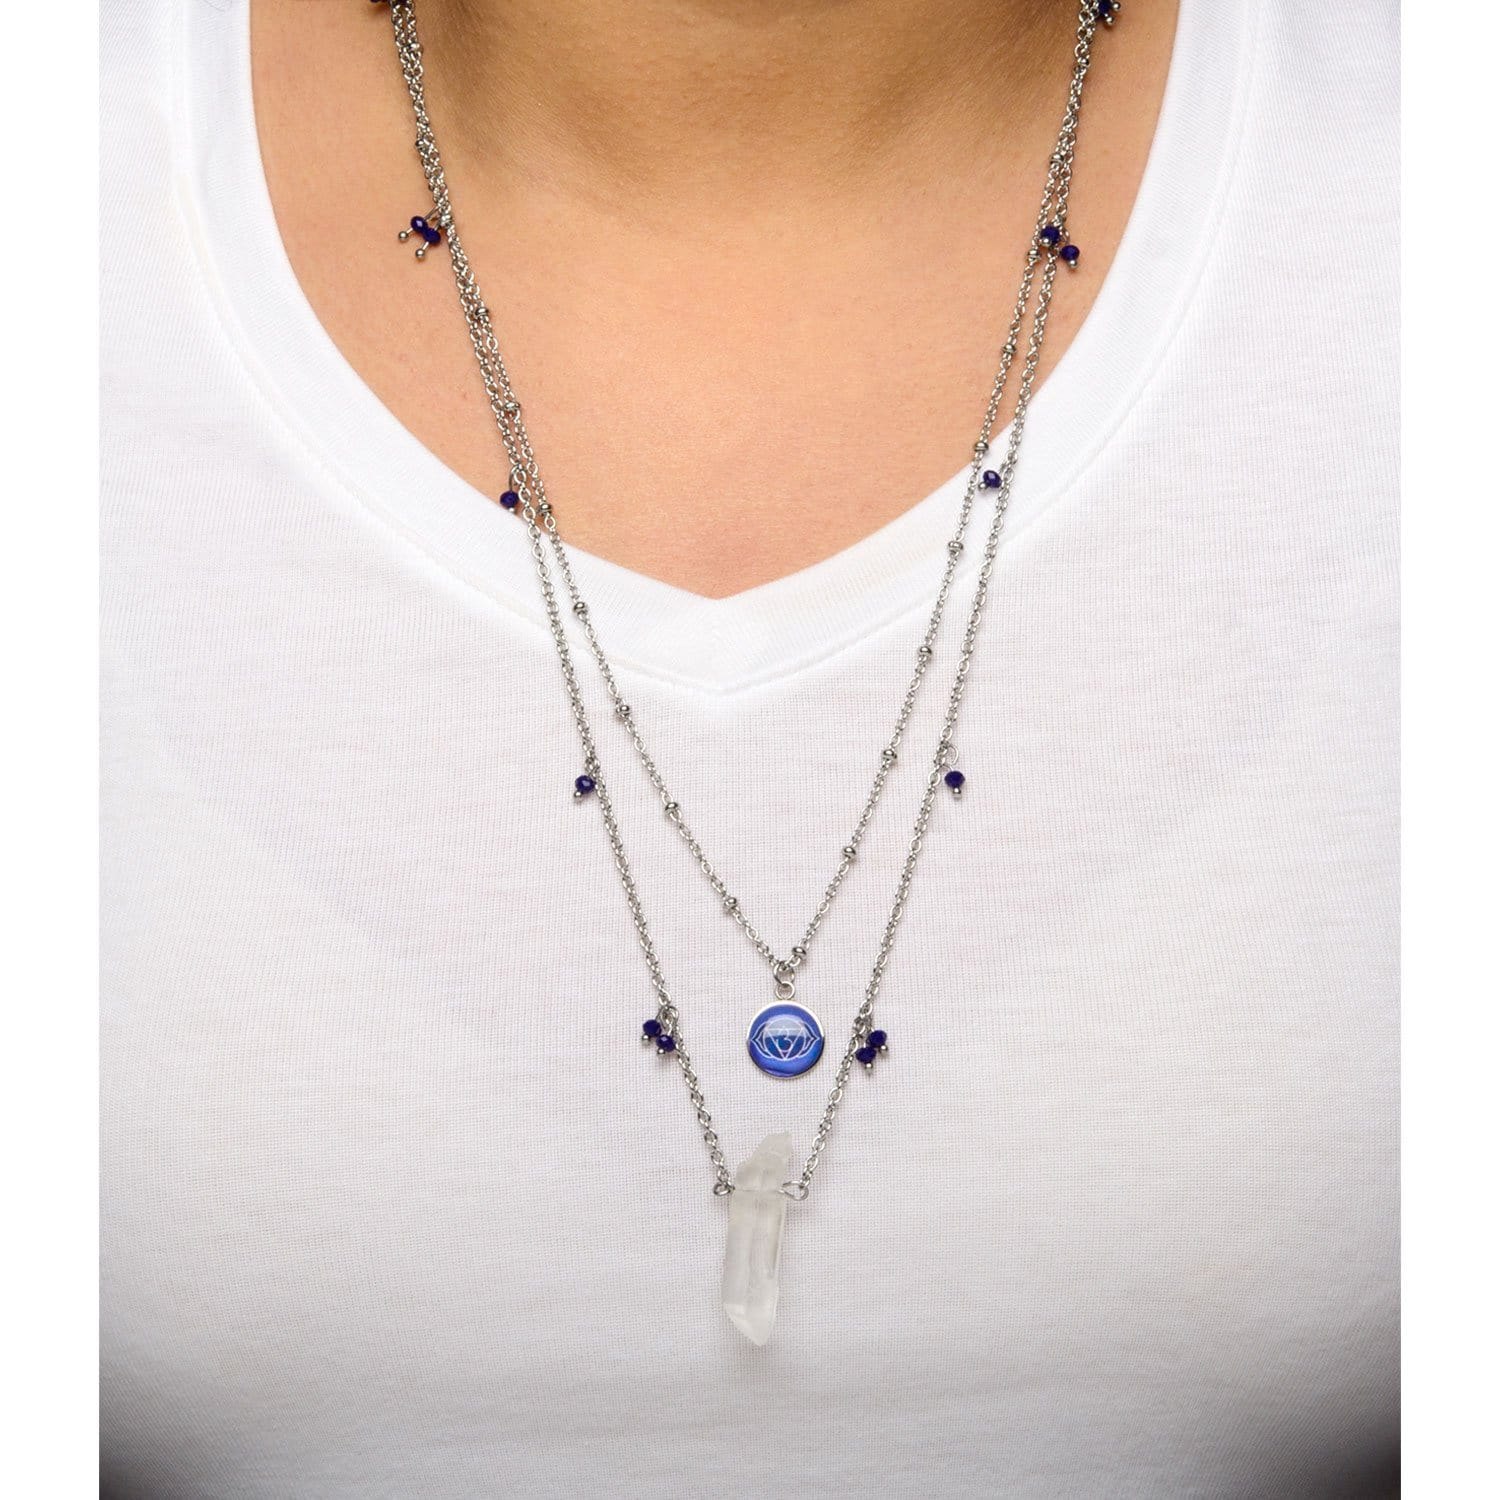 Silver Stainless Steel Blue Quartz Crystal Third Eye Chakra Necklace